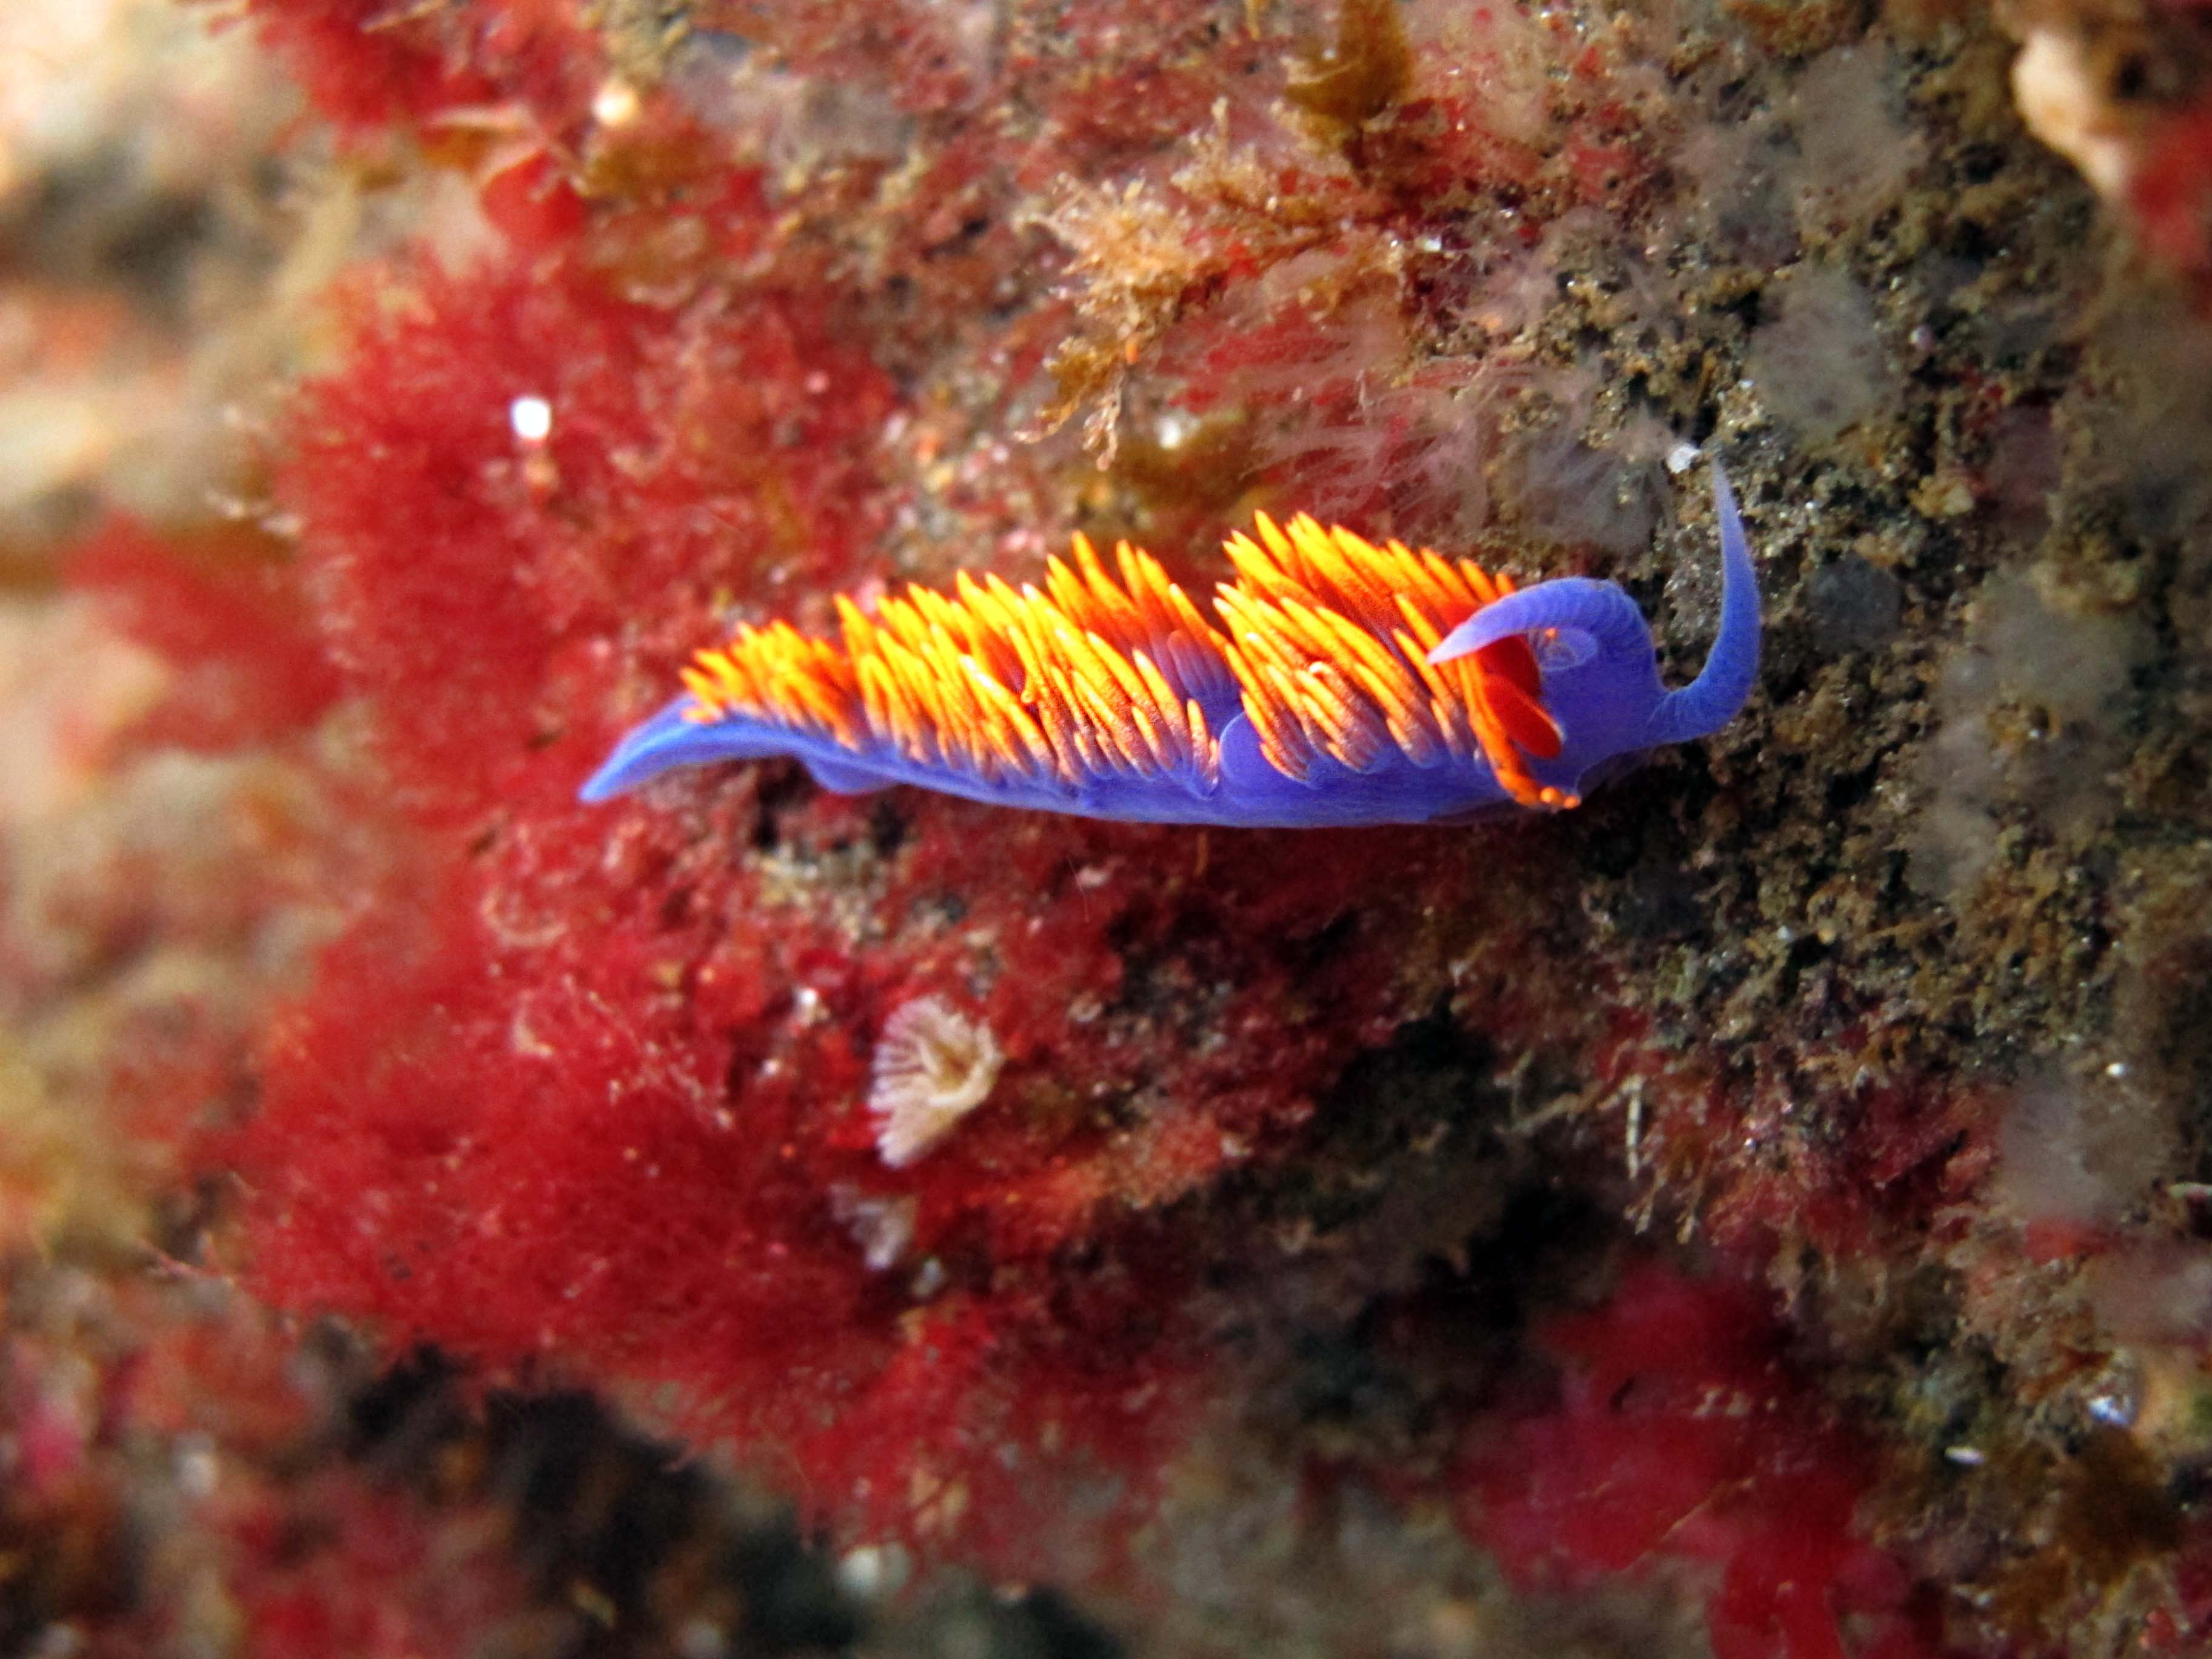 Channel Island Nudibranch | photobackstory